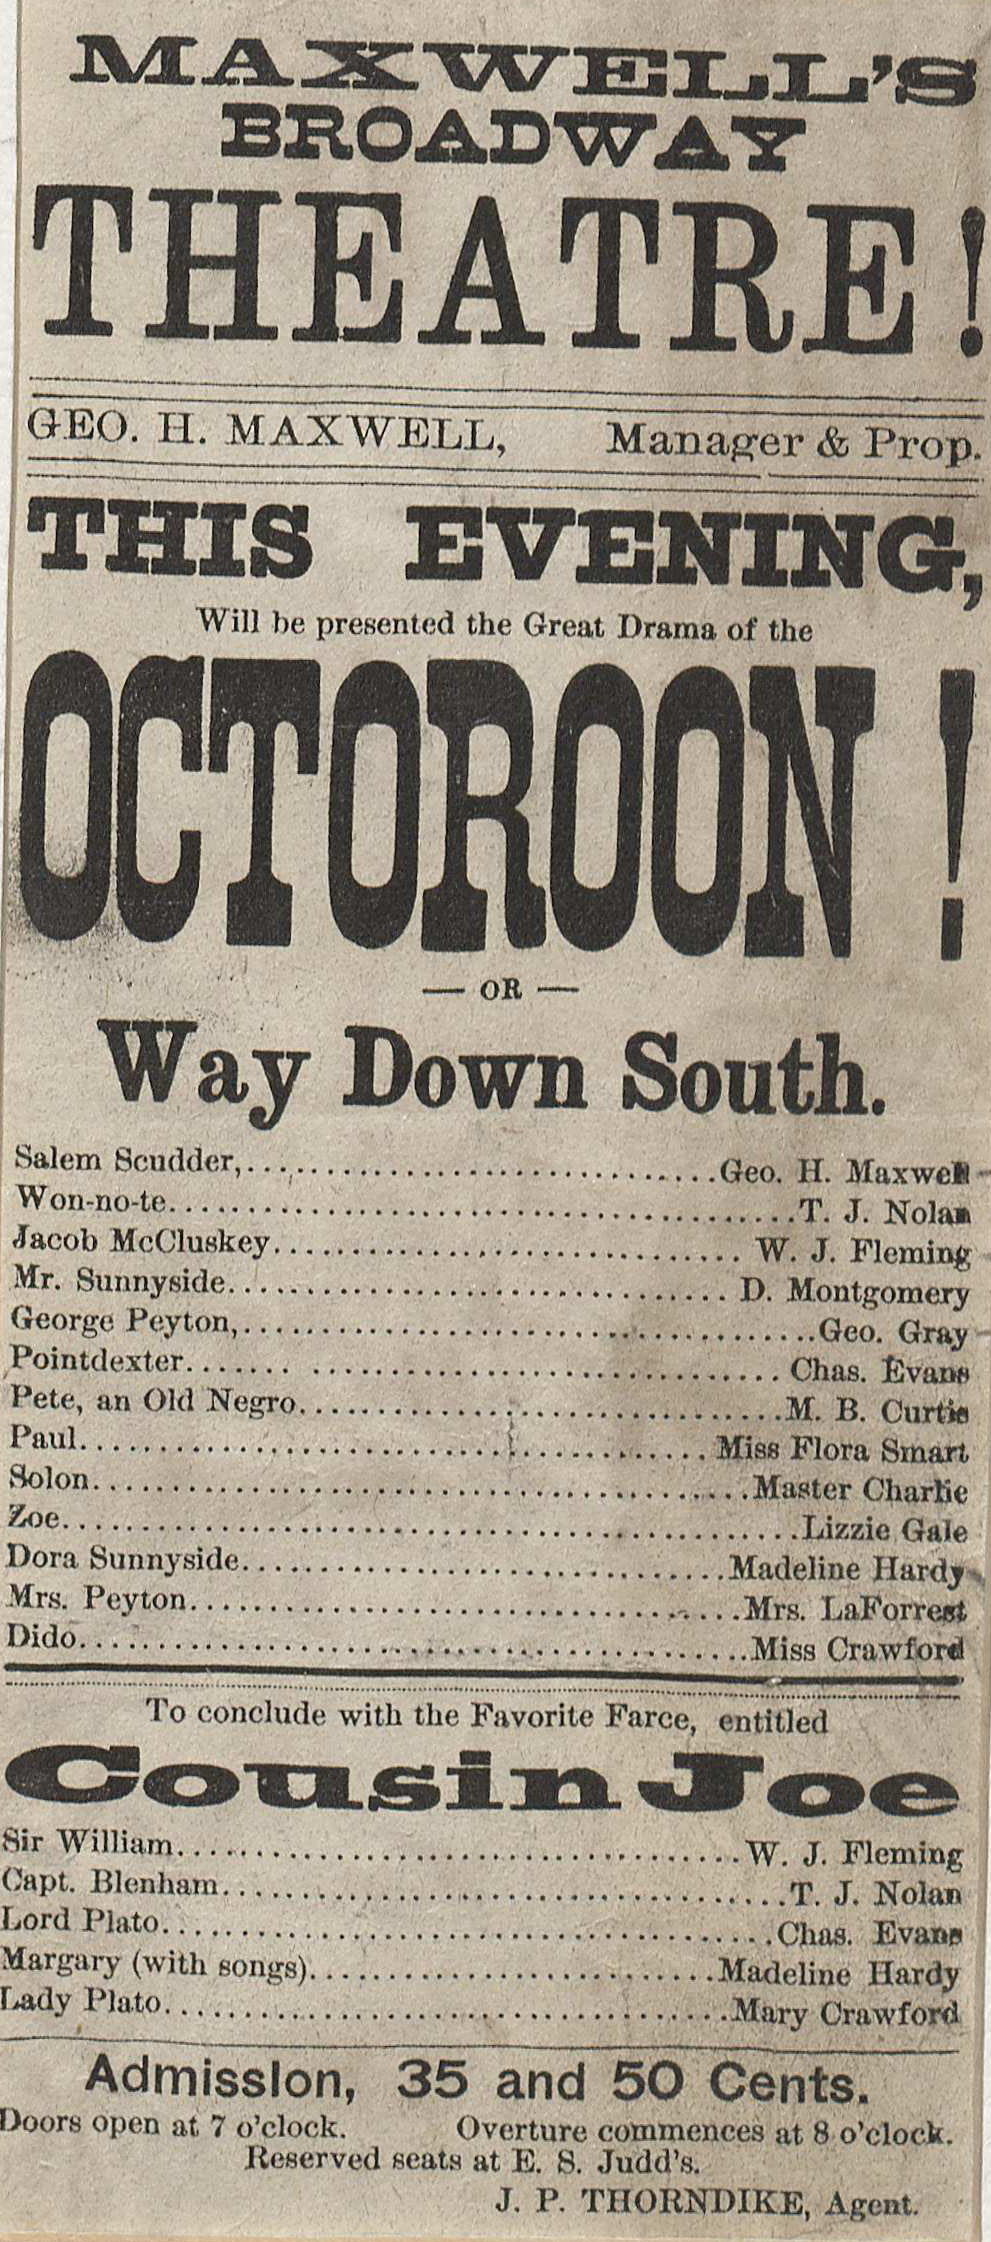 Maxwell's Broadway Theatre!...this evening will be presented the great drama of the Octoroom! or Way Down South (Broadside 65. Image by Petrina Jackson)